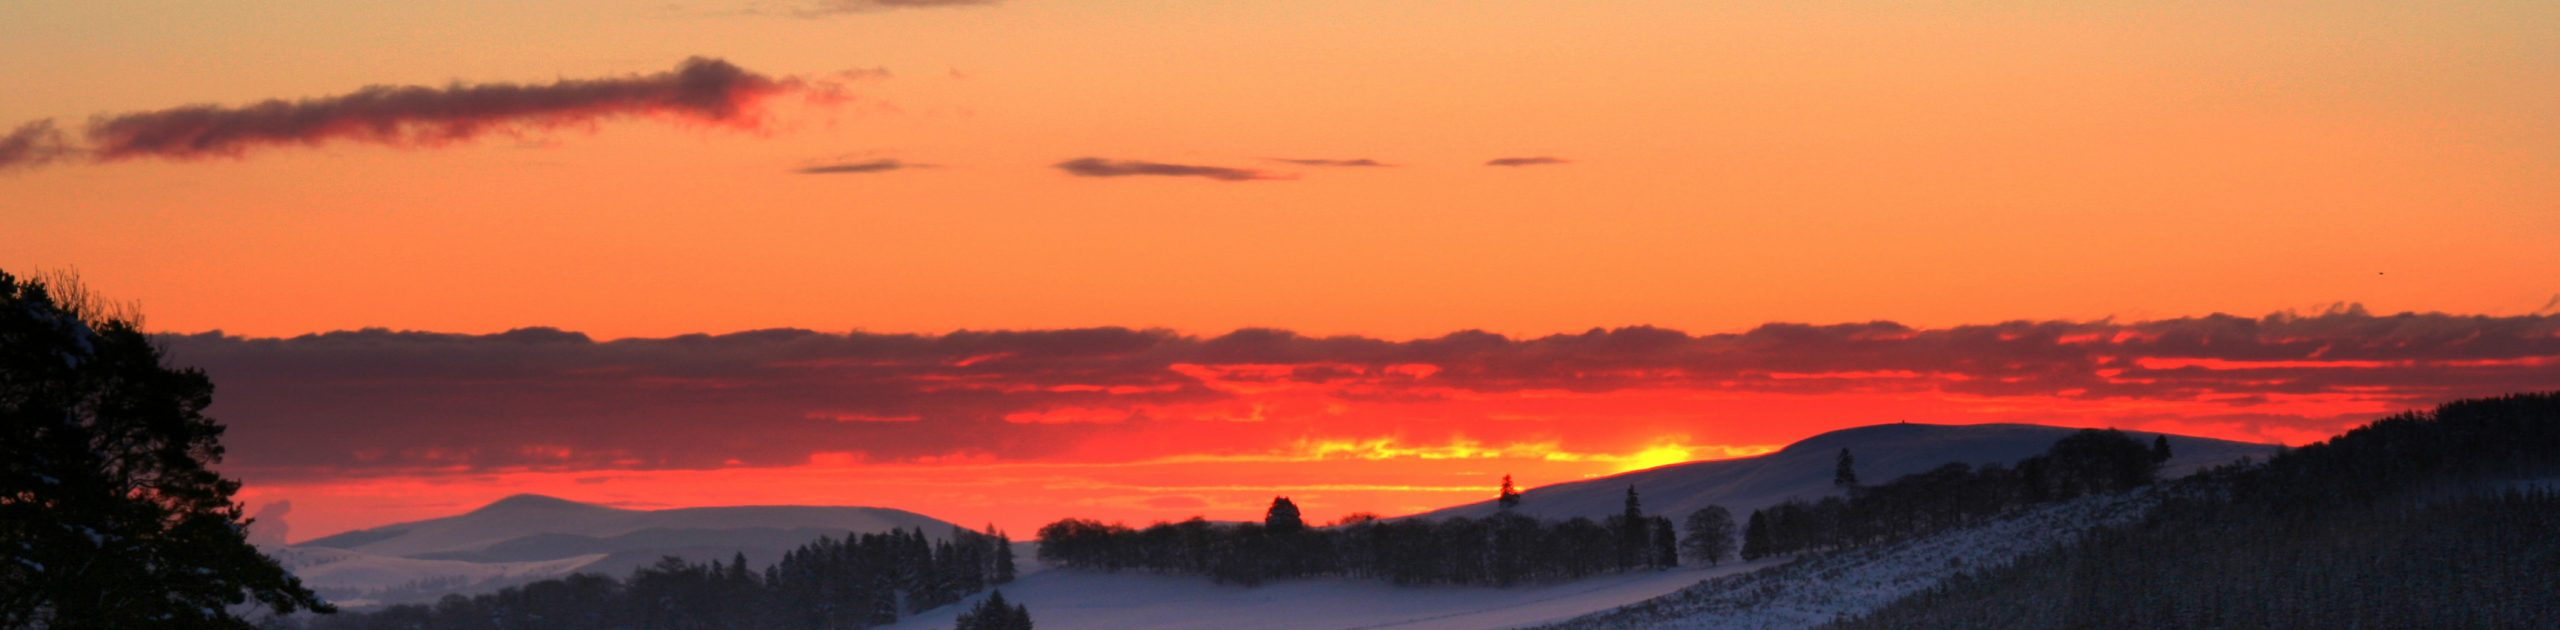 banner red sunrise snow